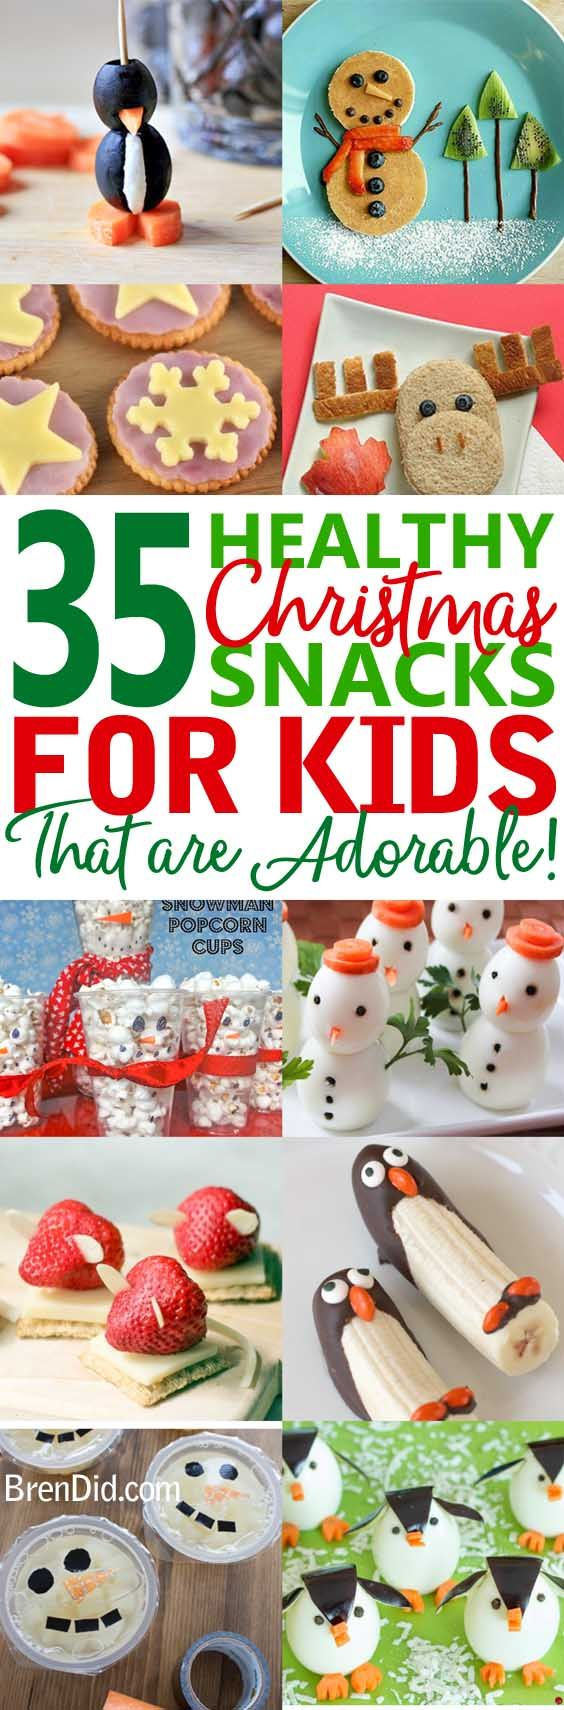 Healthy Christmas treats for kids:  Cute & Healthy Christmas snacks for kids holiday parties, winter parties, and lunch box surprises. Get the easy recipes today! via @brendidblog